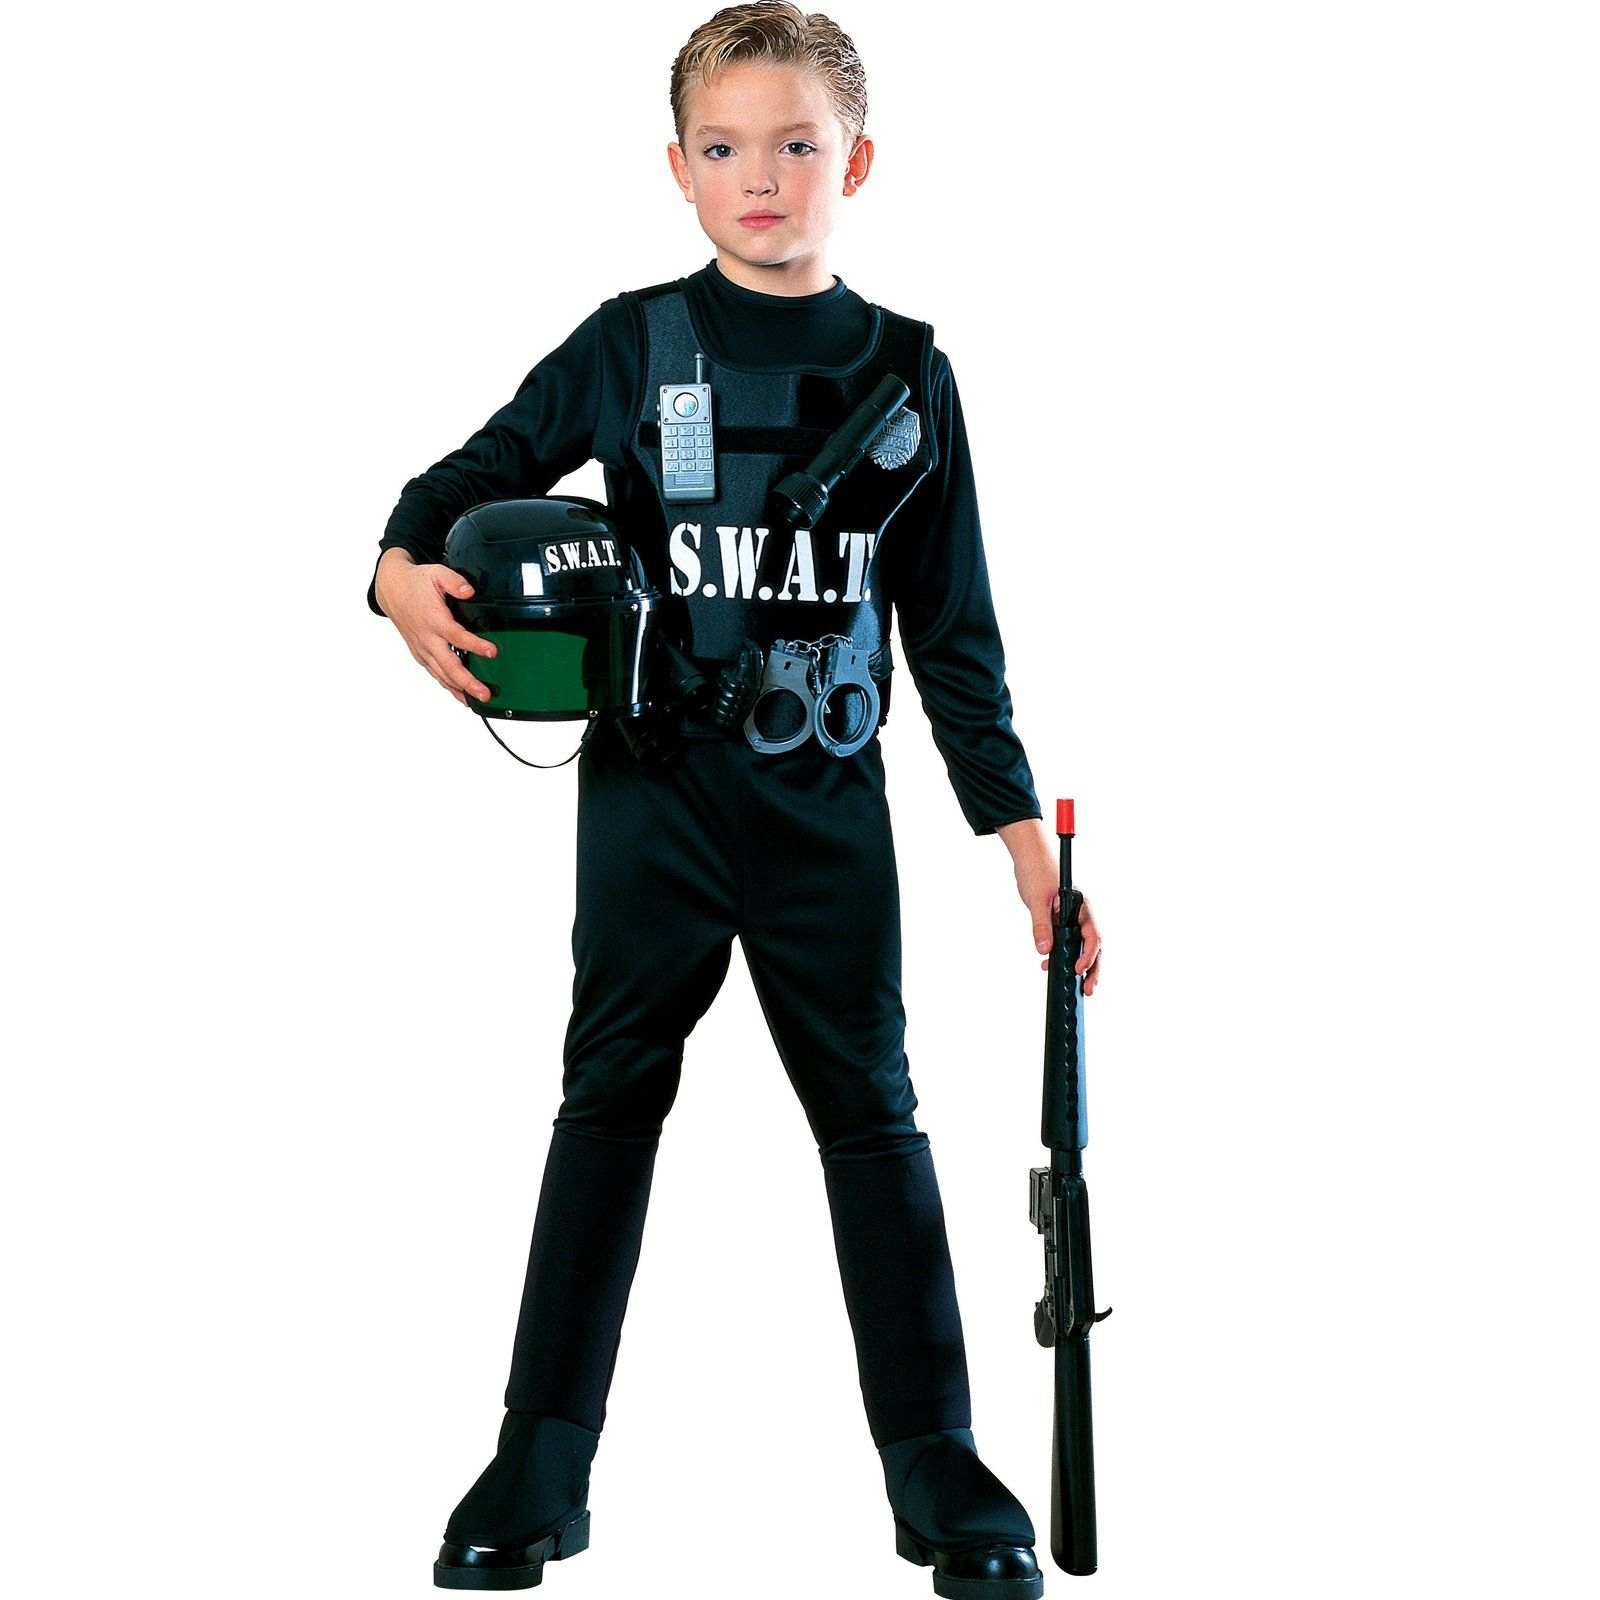 S.W.A.T. Team Child Costume | Children costumes, Costumes and Child